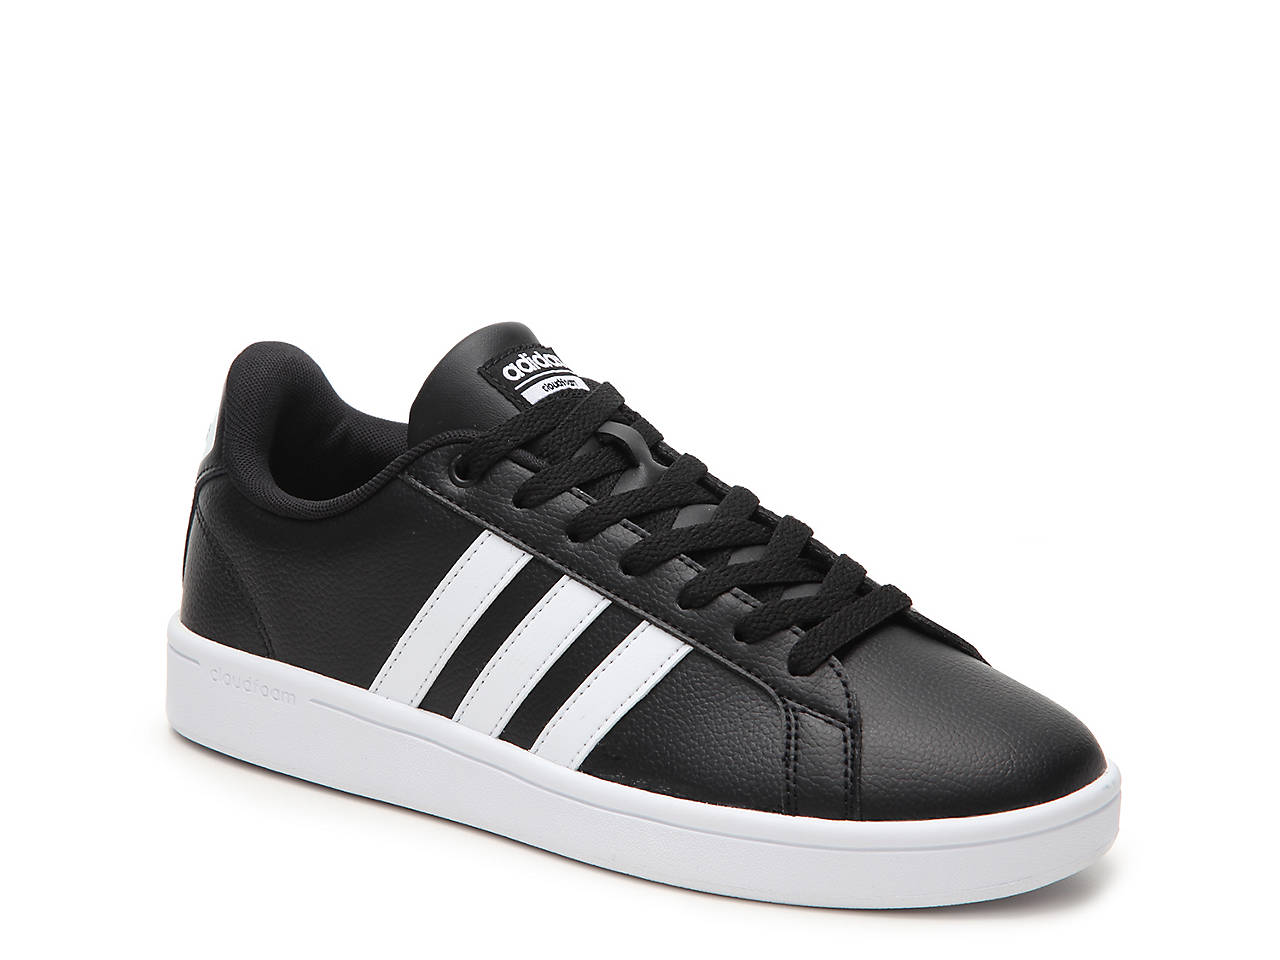 9e31a161f adidas Advantage Sneaker - Women s Women s Shoes